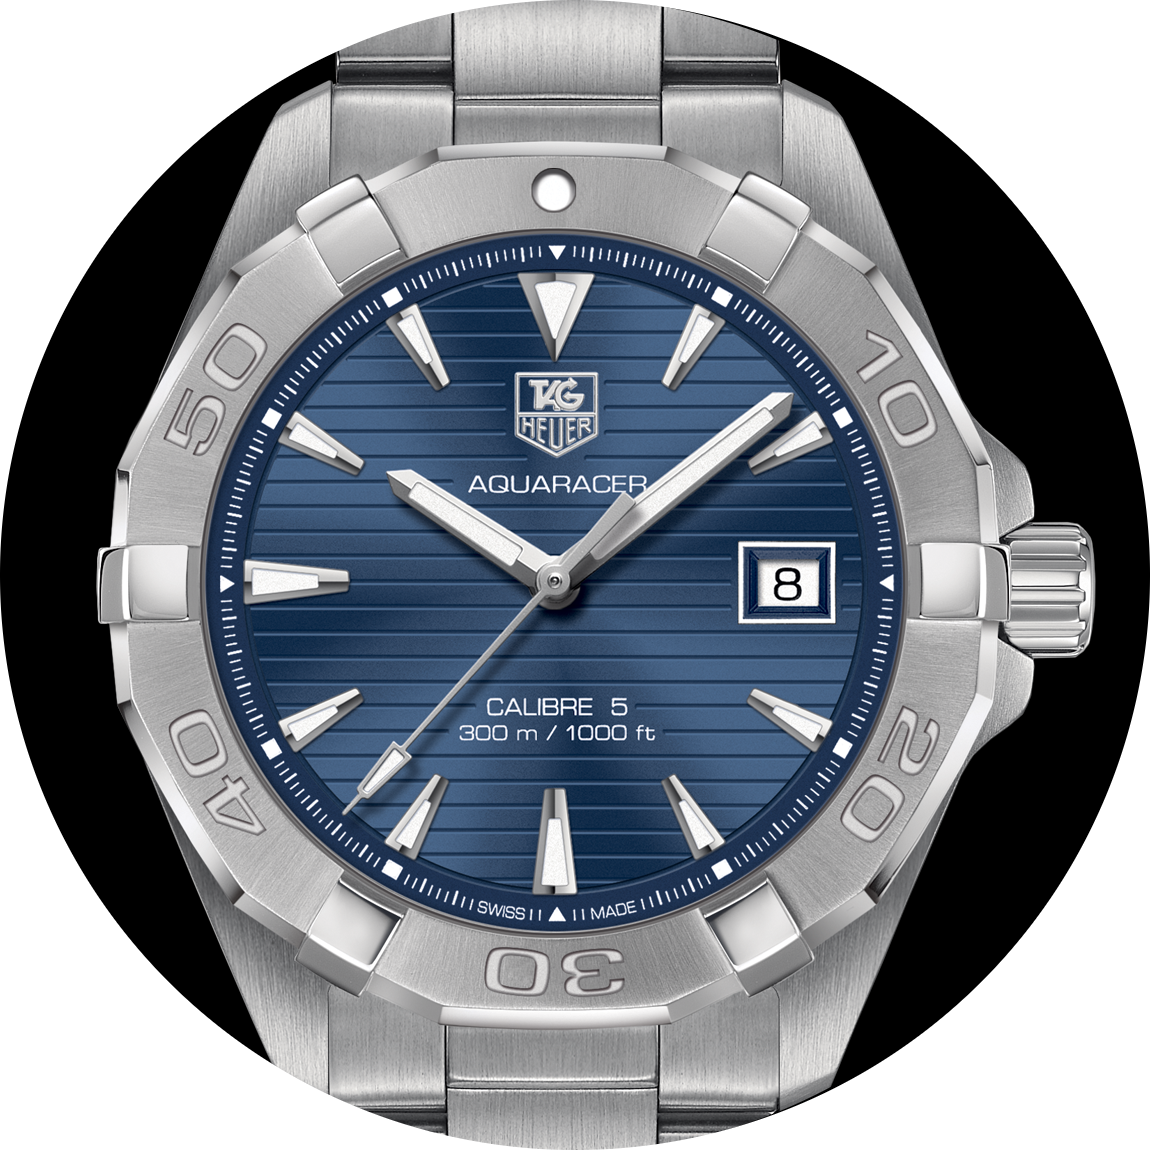 Men's TAG Heuer Aquaracer Calibre 5 300m Ref. WAT2112.BA0928. Photo courtesy of TAG Heuer.